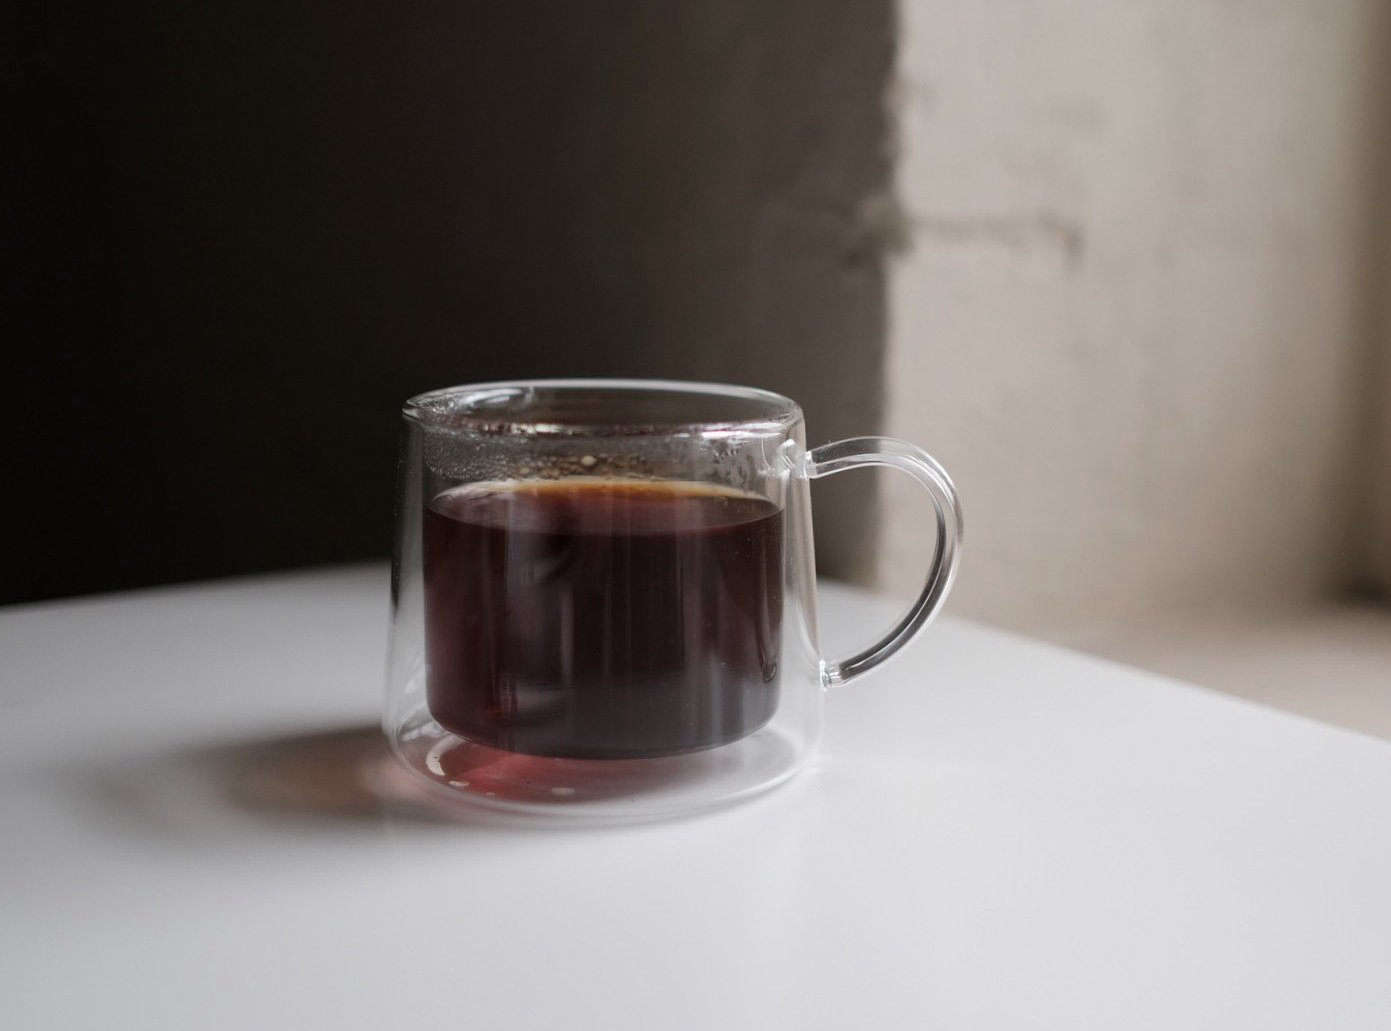 ThisGlass Mug from Japanese brand Claska has a double-wall design to keep tea hotter longer. It&#8